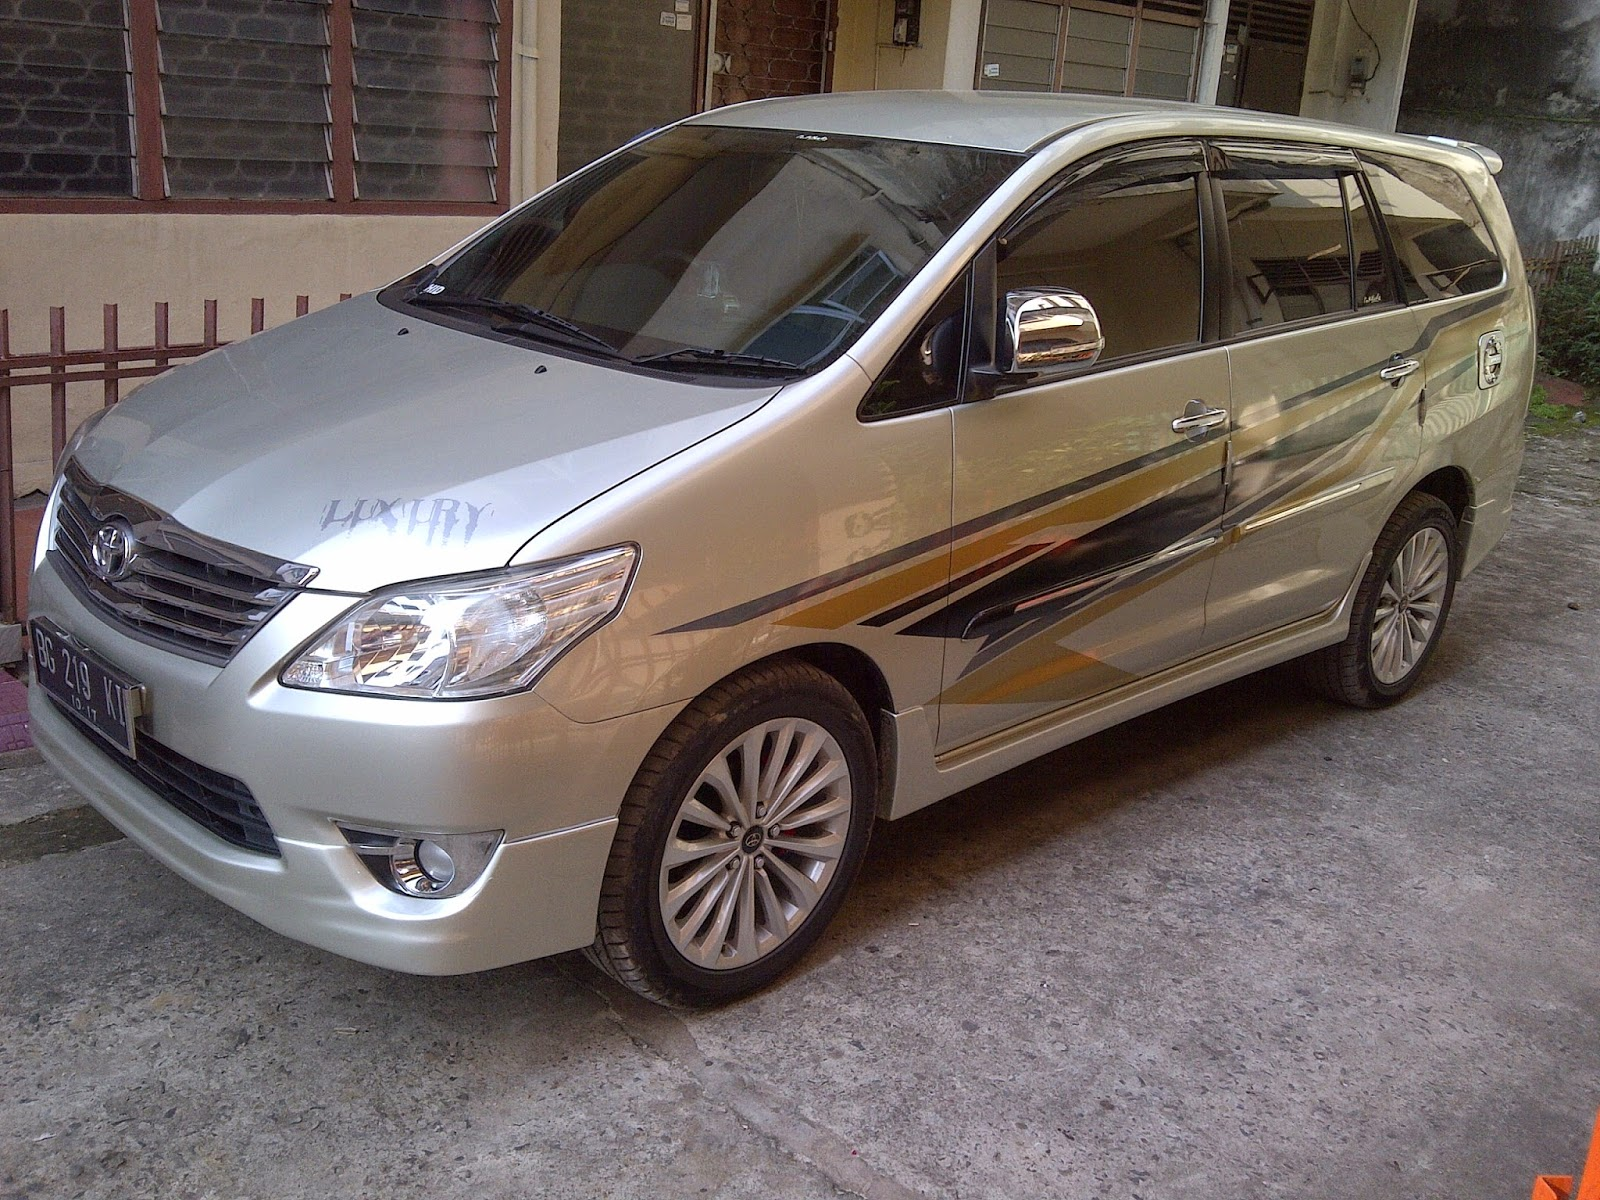 Download Gambar Modifikasi Kijang Innova Luxury Modifbiker